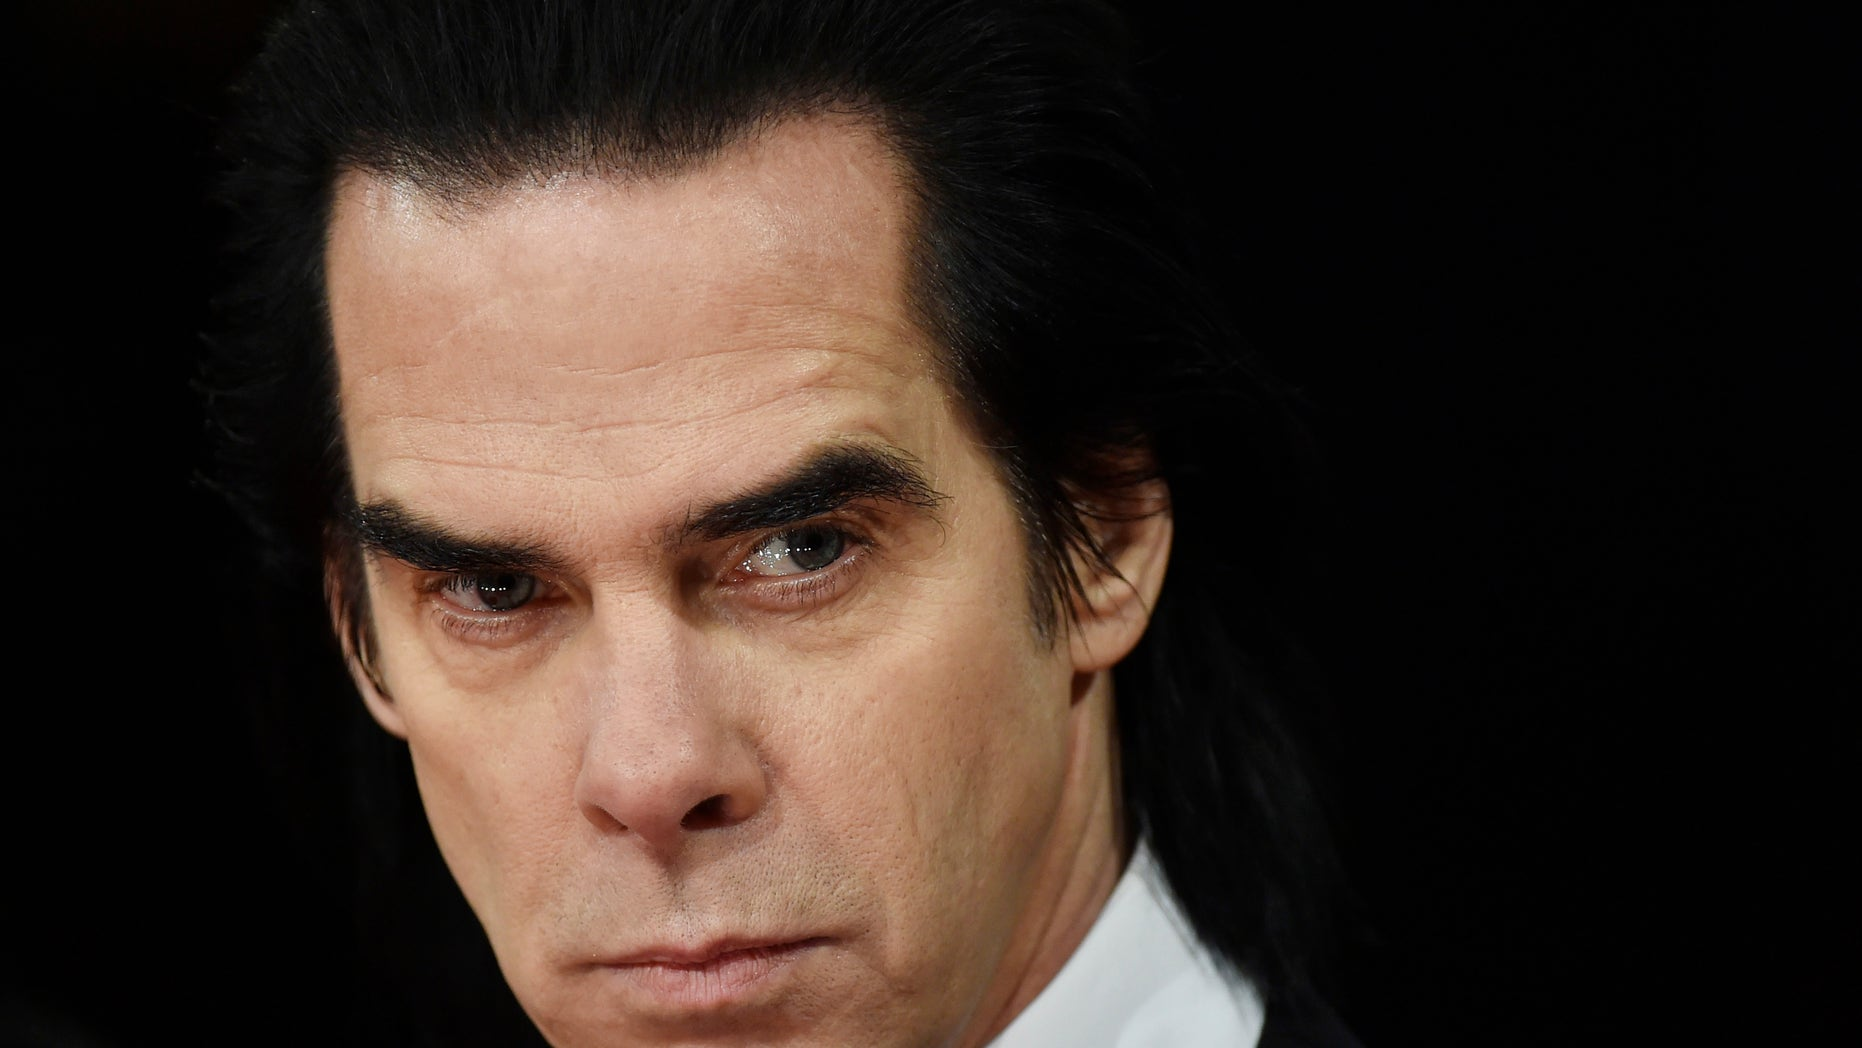 Australian musician Nick Cave arrives at the British Academy of Film and Arts (BAFTA) awards ceremony at the Royal Opera House in London February 8, 2015. REUTERS/Toby Melville (BRITAIN - Tags: ENTERTAINMENT) - RTR4OPSV